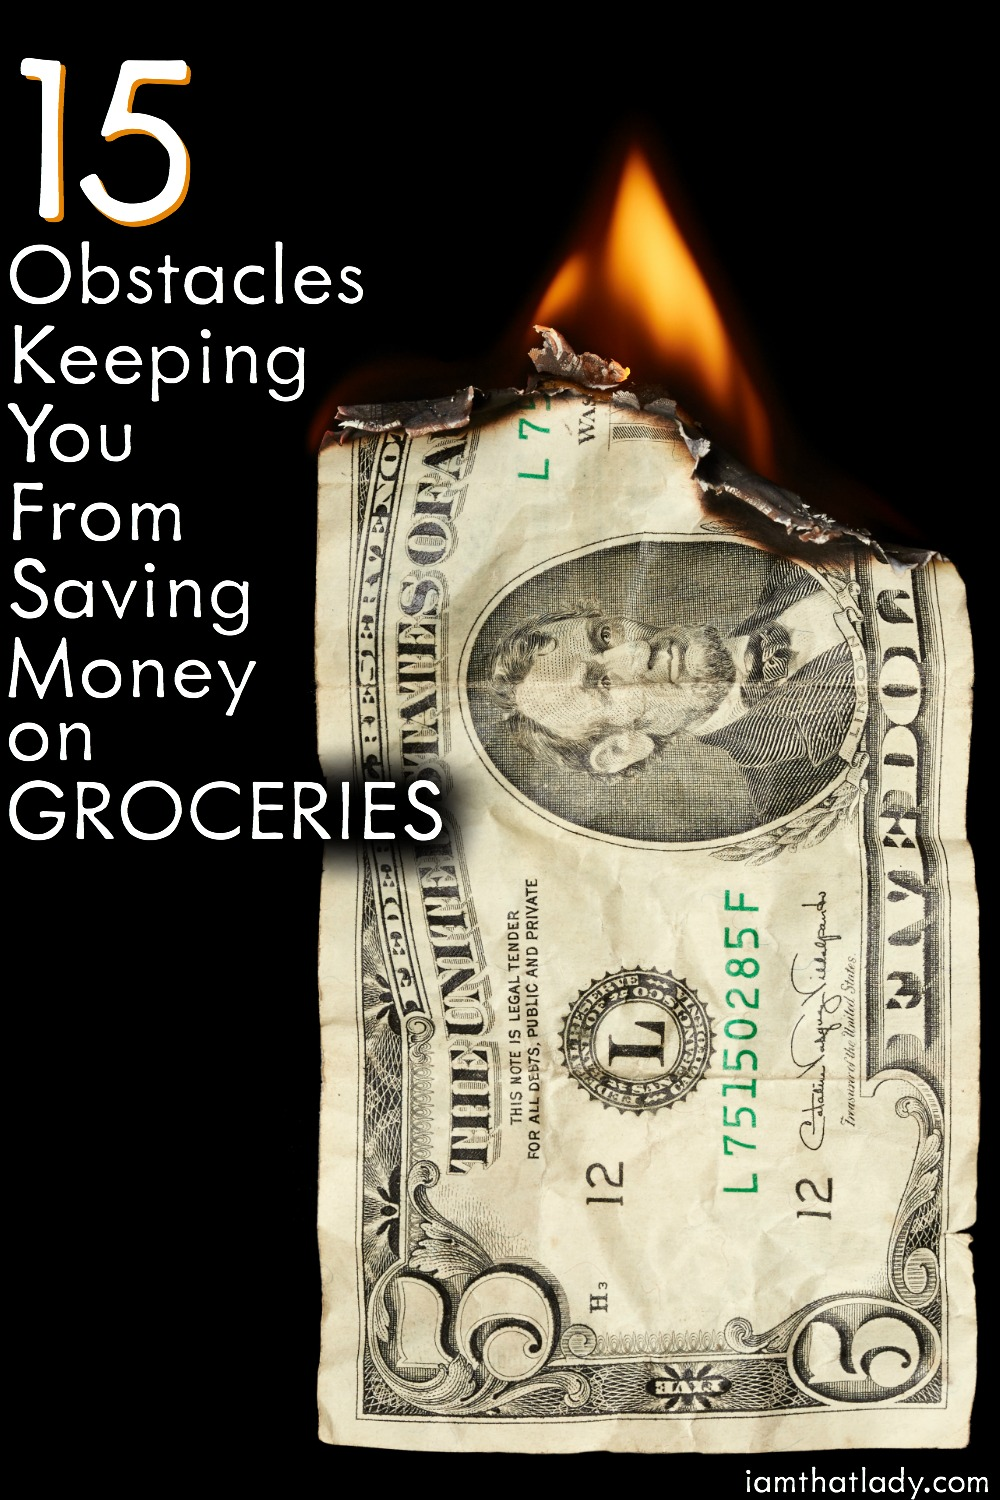 Food is expensive! But there are some simple things you can do to save a TON of money! Check out these 15 Obstacles keeping you from saving on groceries!